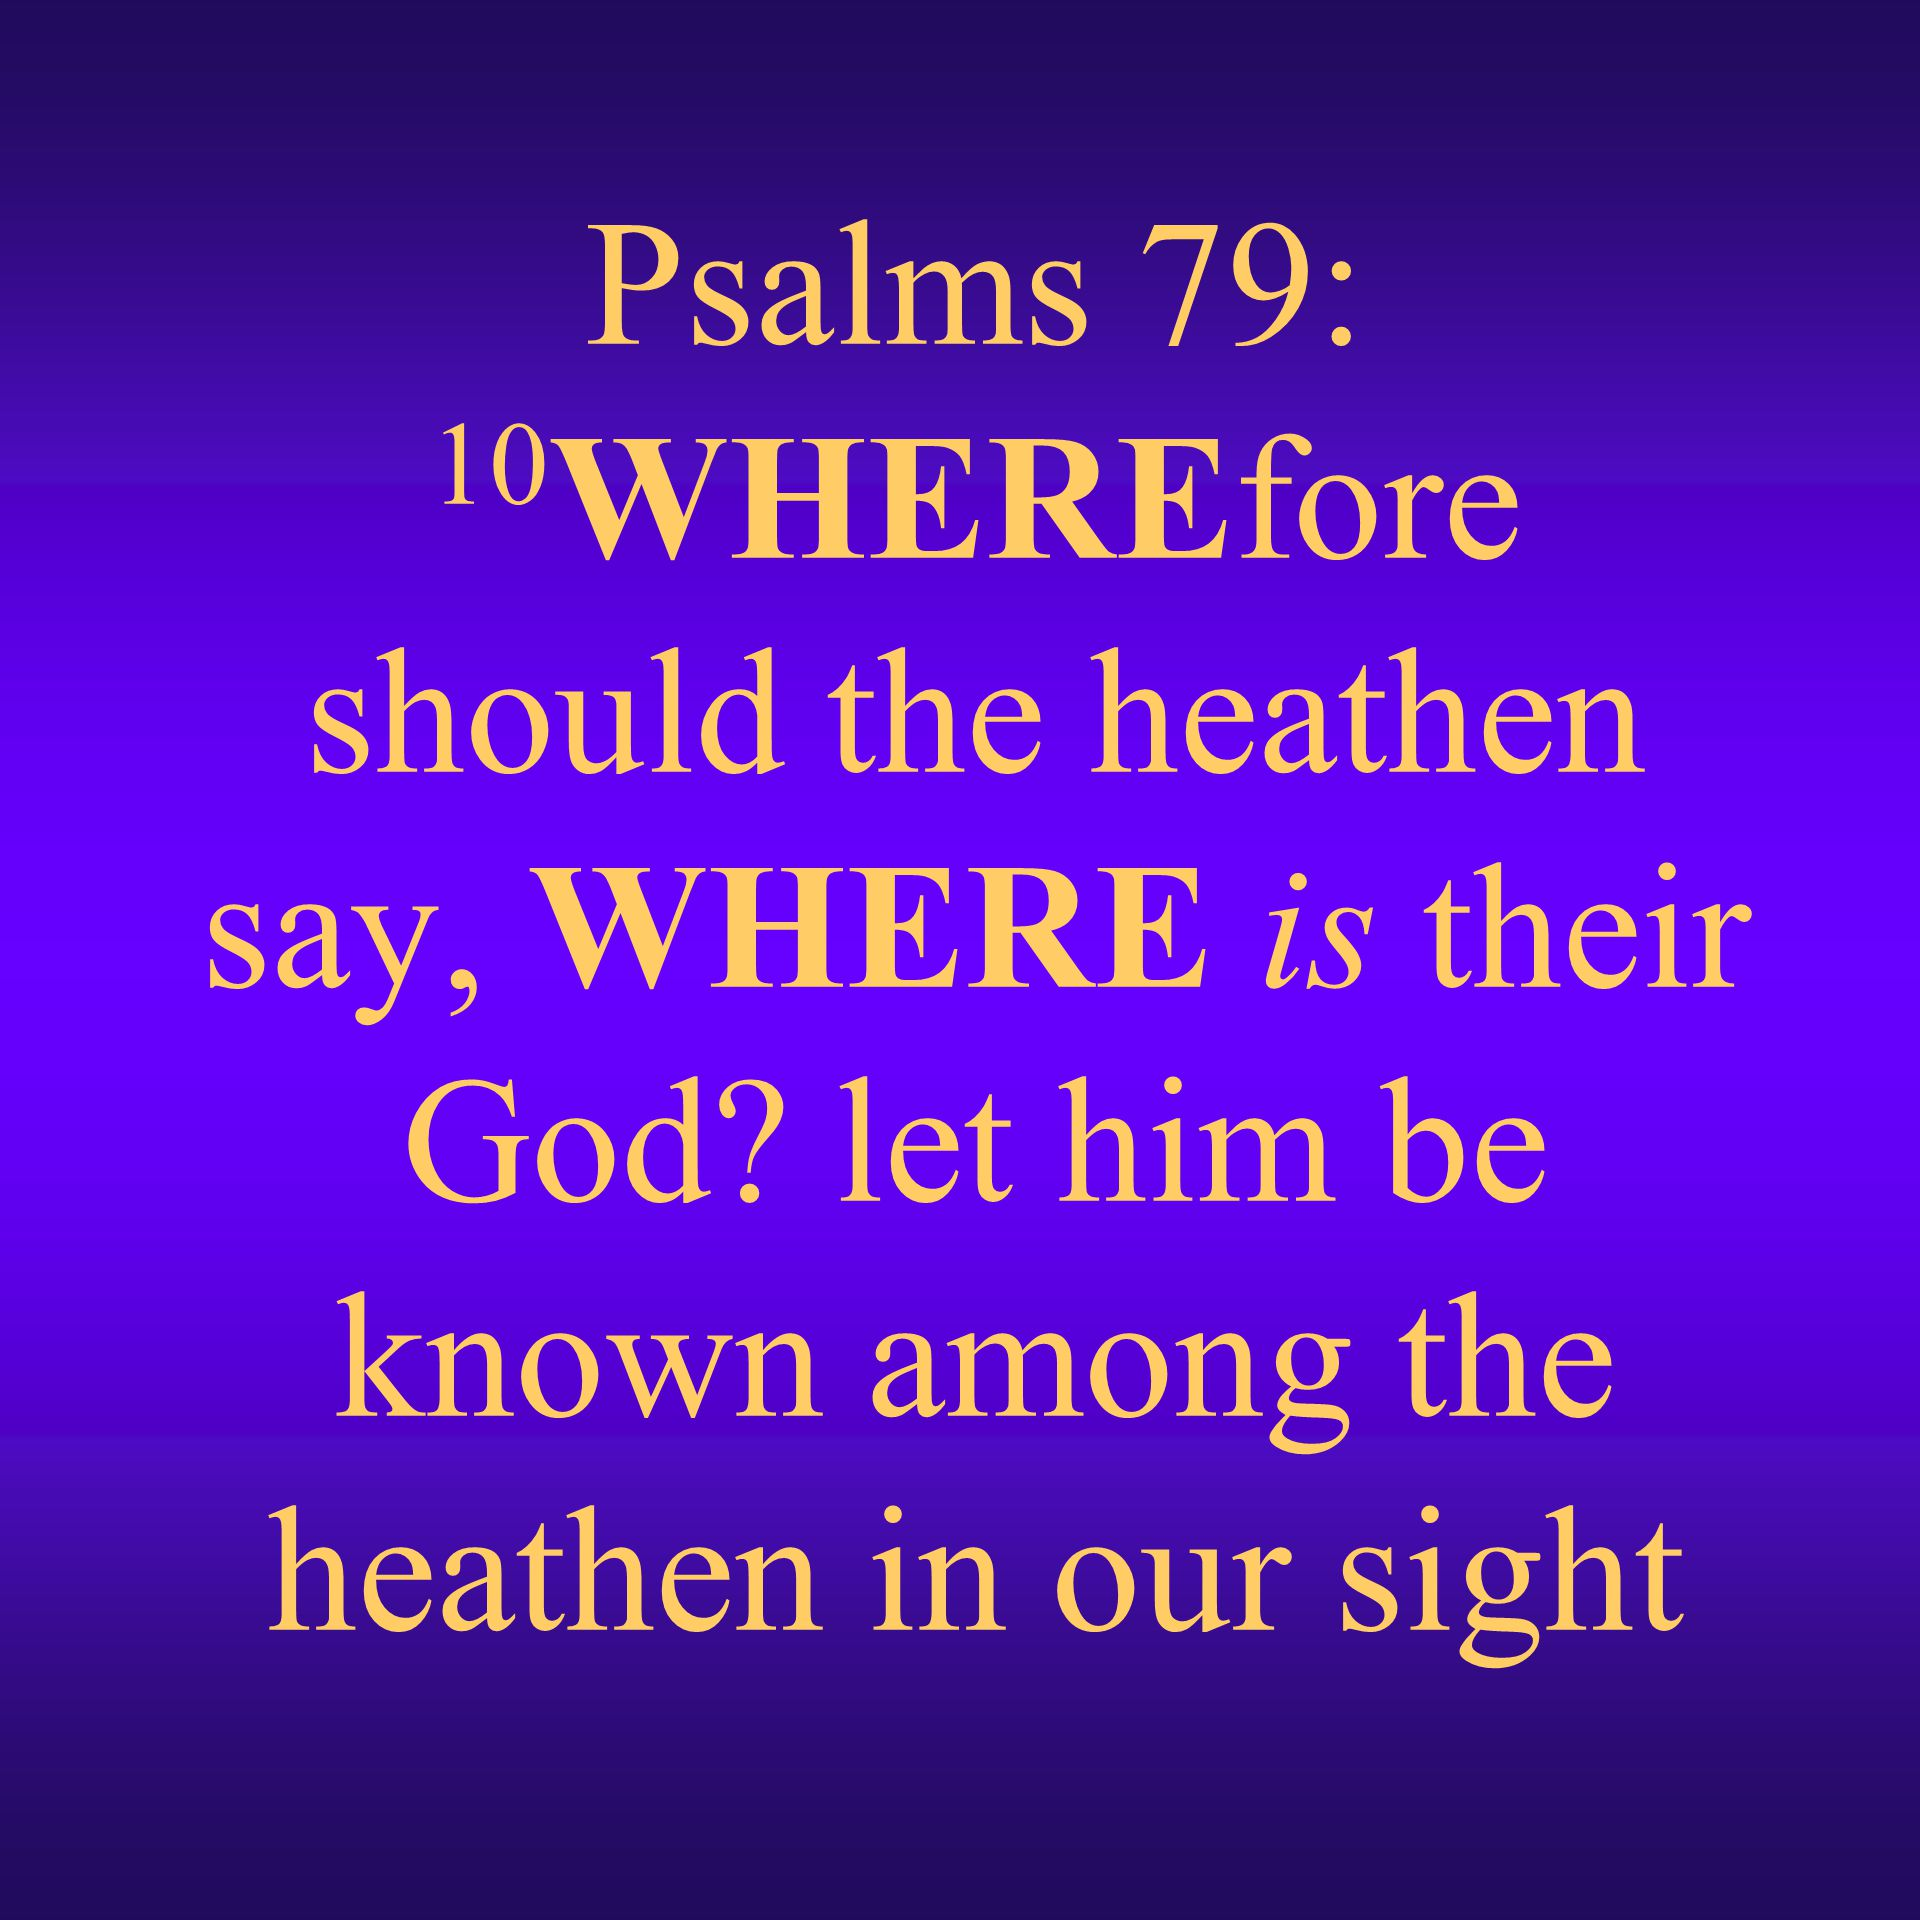 Psalms 79: 10WHEREfore should the heathen say, WHERE is their God